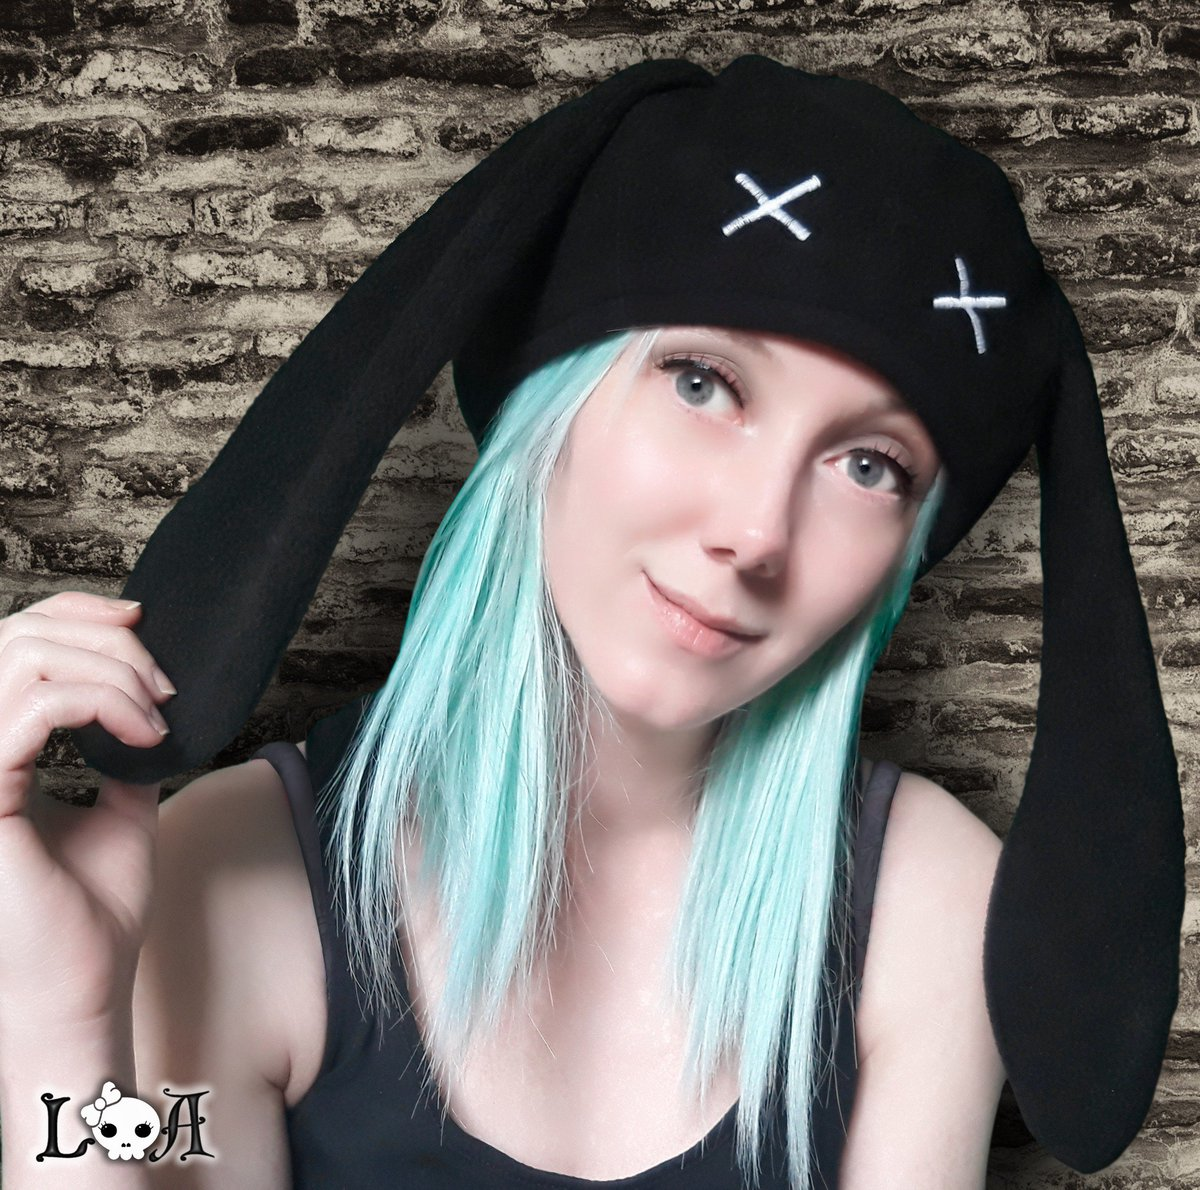 test Twitter Media - 🐰☠️Creepy Cute Kitty Hat in Black ☠️🐰 🔗 https://t.co/1BuSVCB6Mi #CreepyCute #PastelGoth #Alternative #Cute #Gothic #Bunny #Rabbit #Hats #Fashion #LolitasAdornments https://t.co/i4eeHaL46q